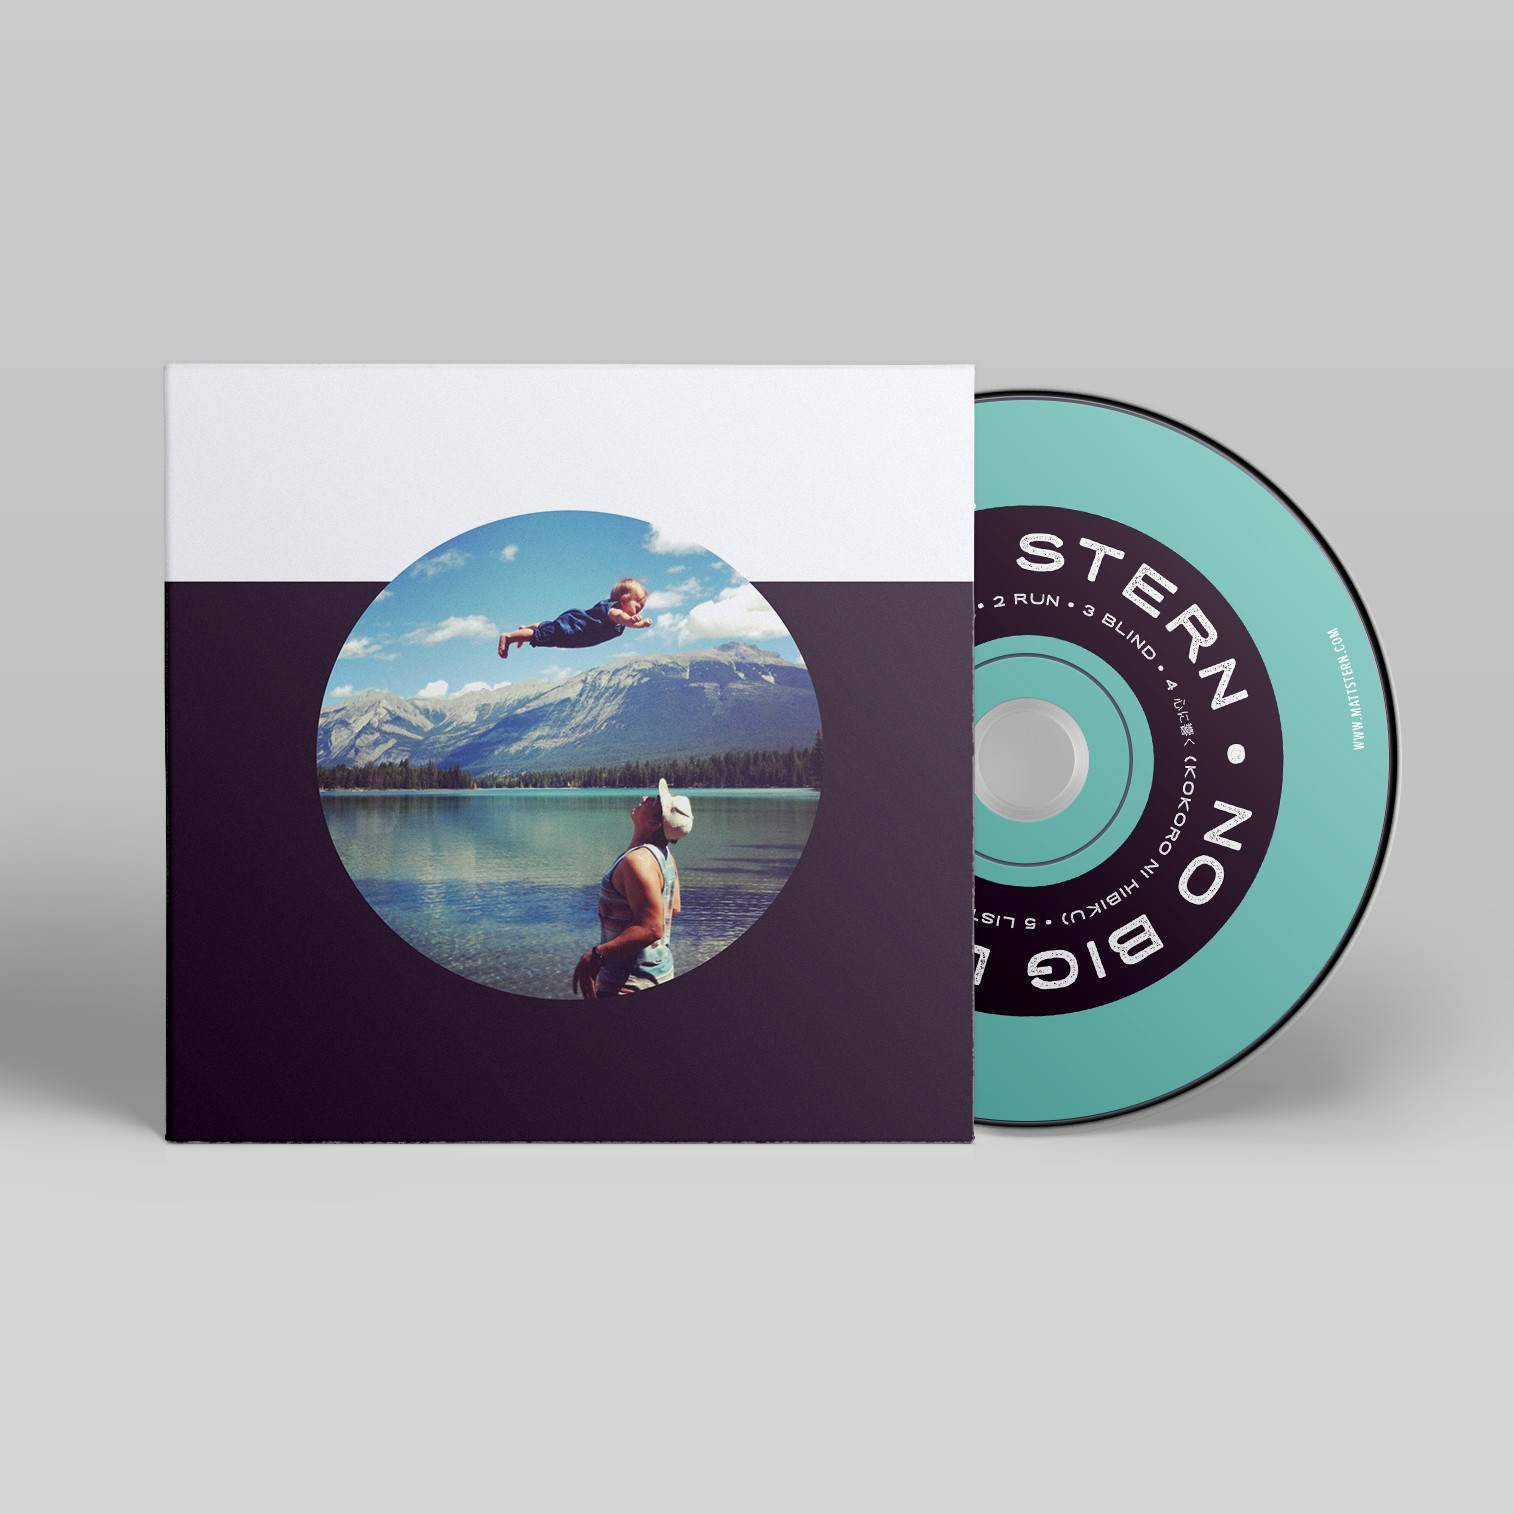 CD Sleeve Design for Matt Stern No Big Deal